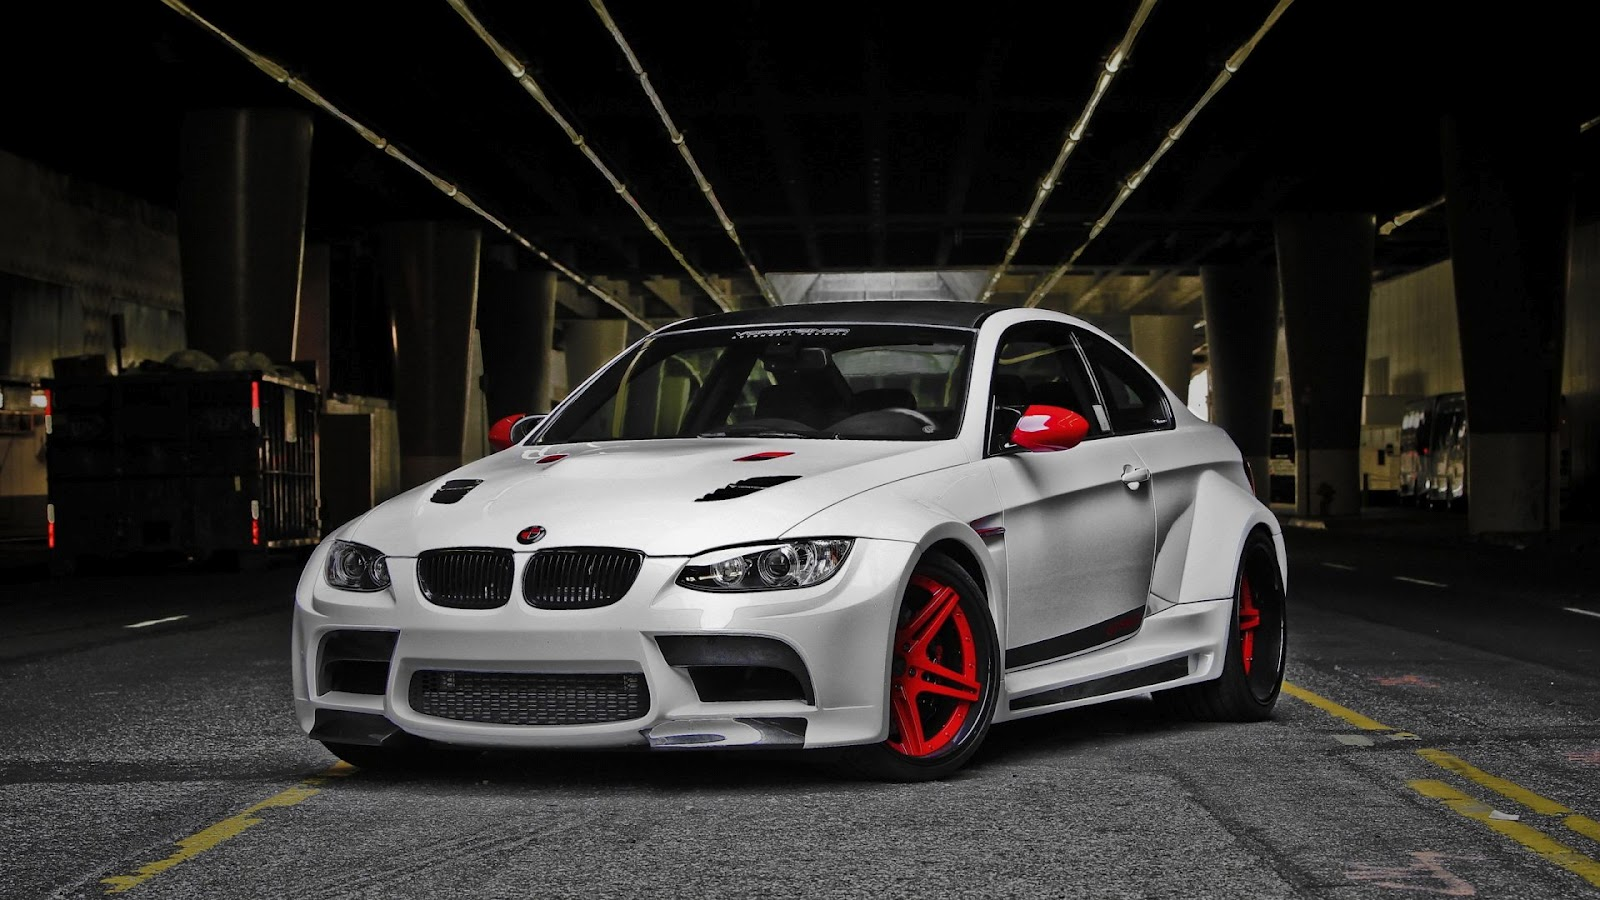 BMW M3 Wallpaper Photos